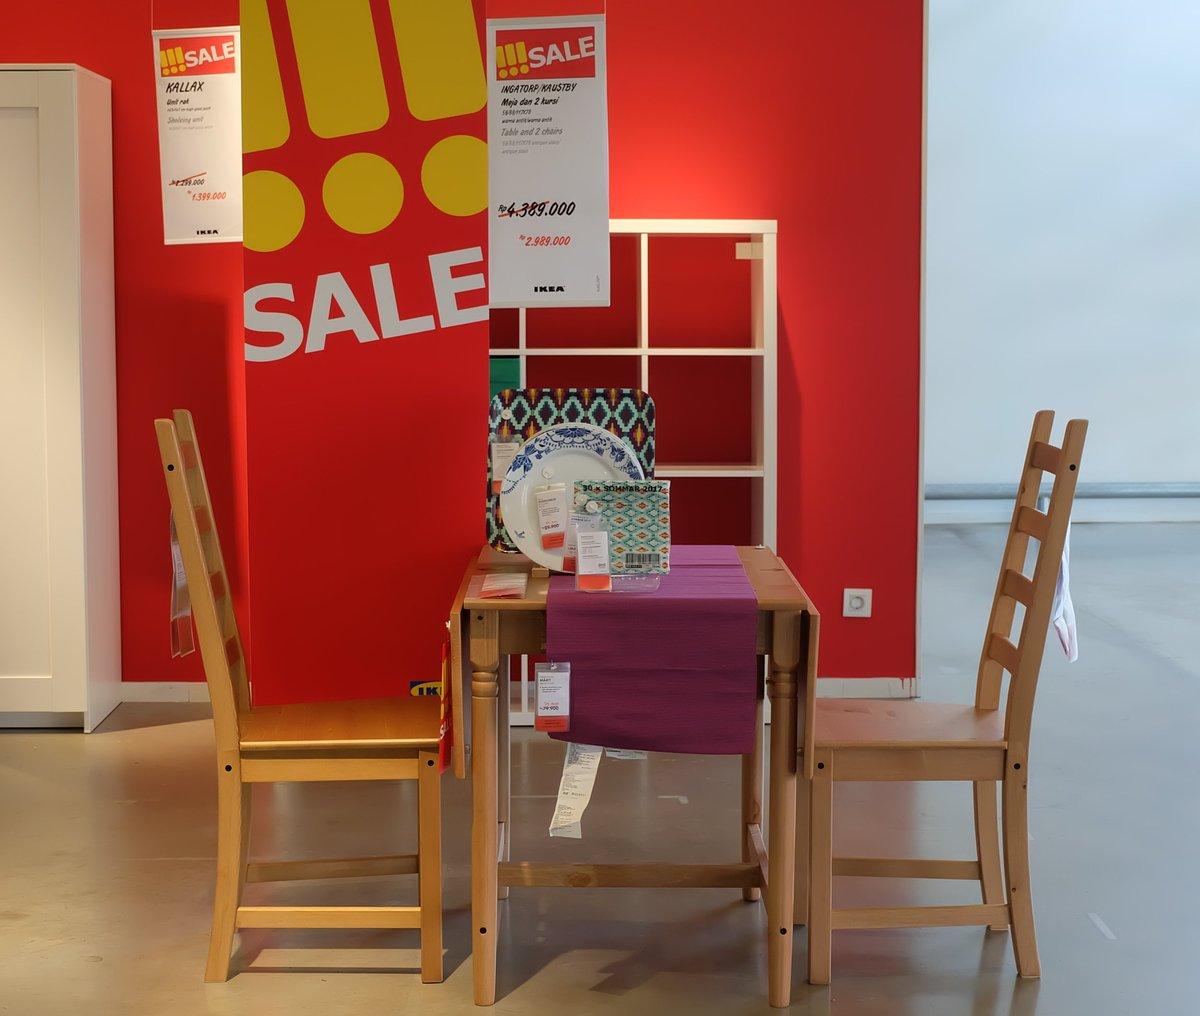 "ikea sale forecast Swedish furniture giant ikea has sent a scouting crew through henrietta ikea considering opening rochester-area store ""it's no secret that mall sales are."